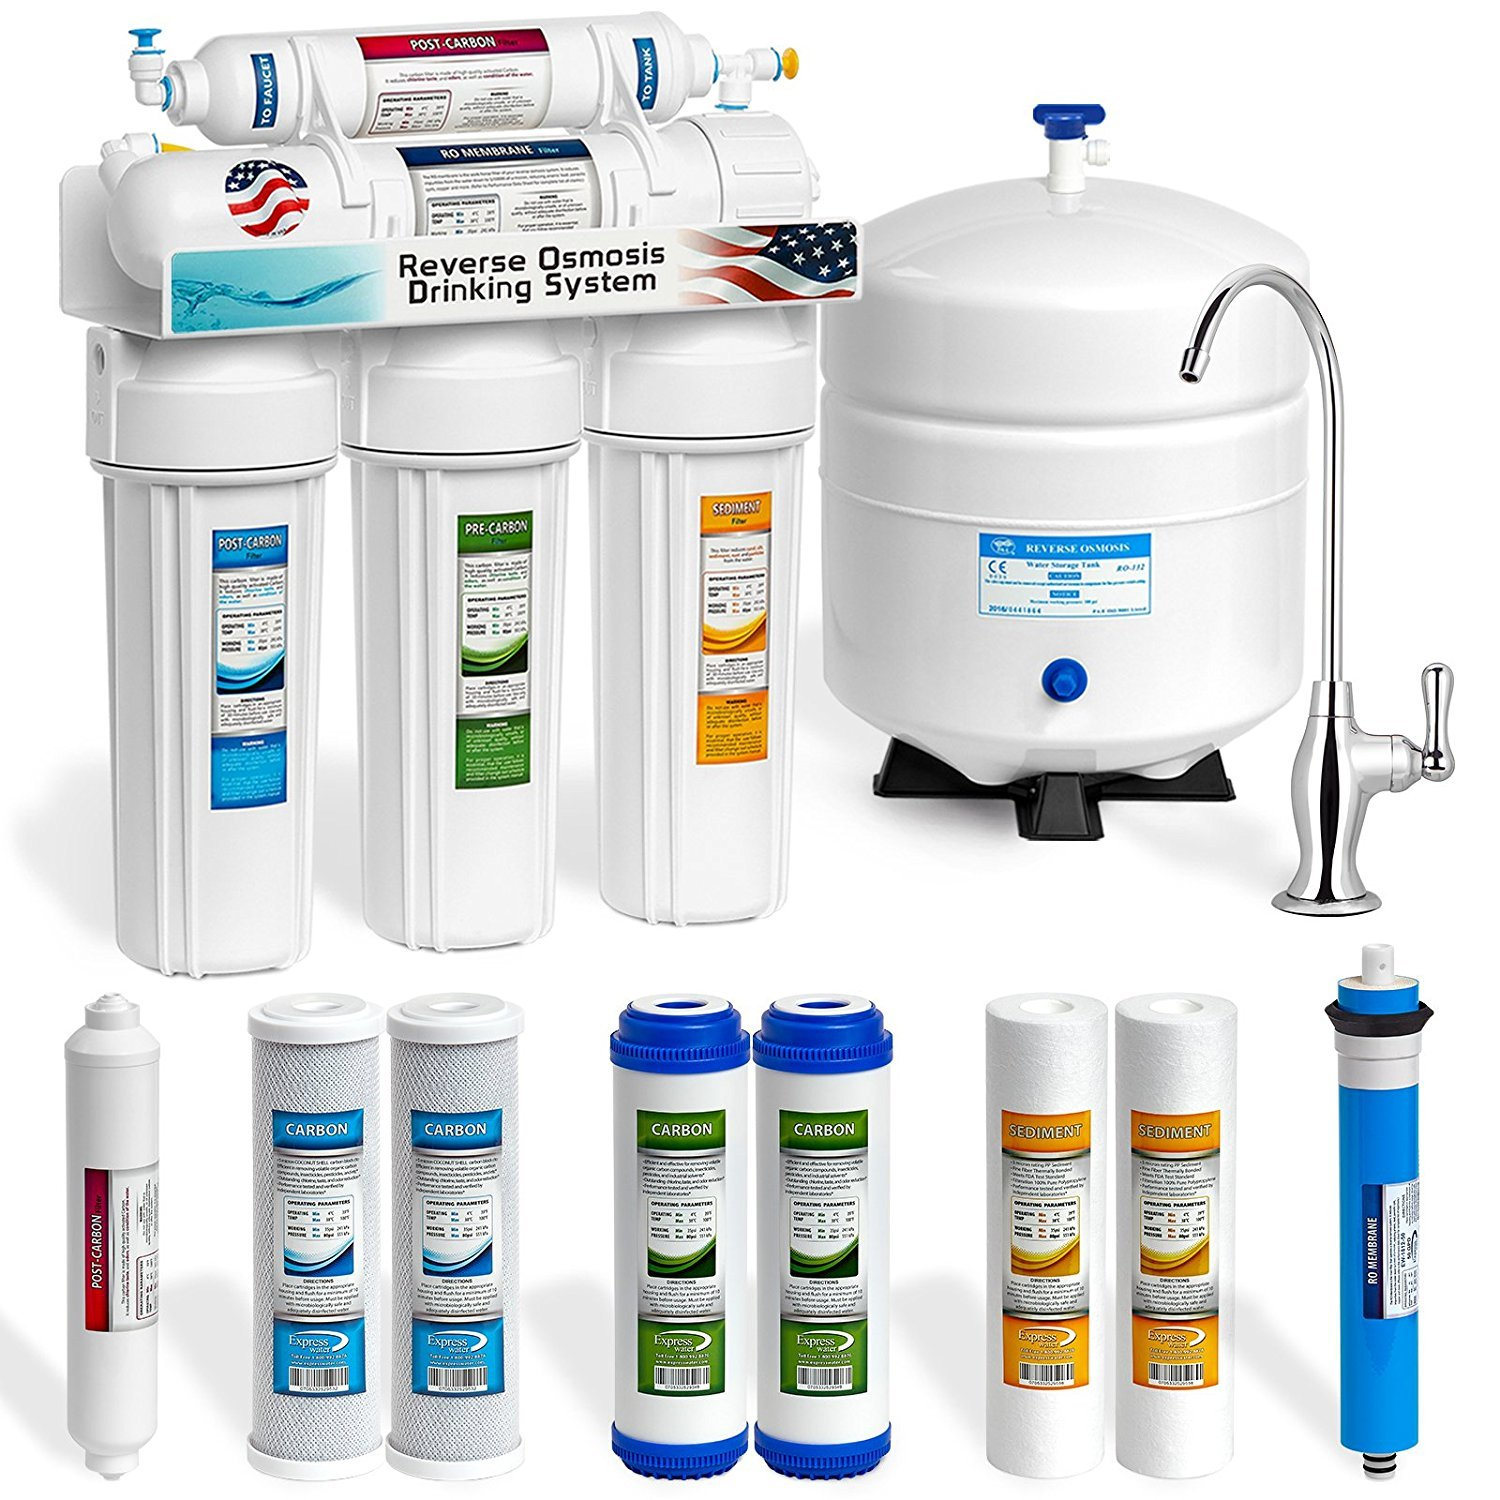 Best Reverse Osmosis Filter Systems